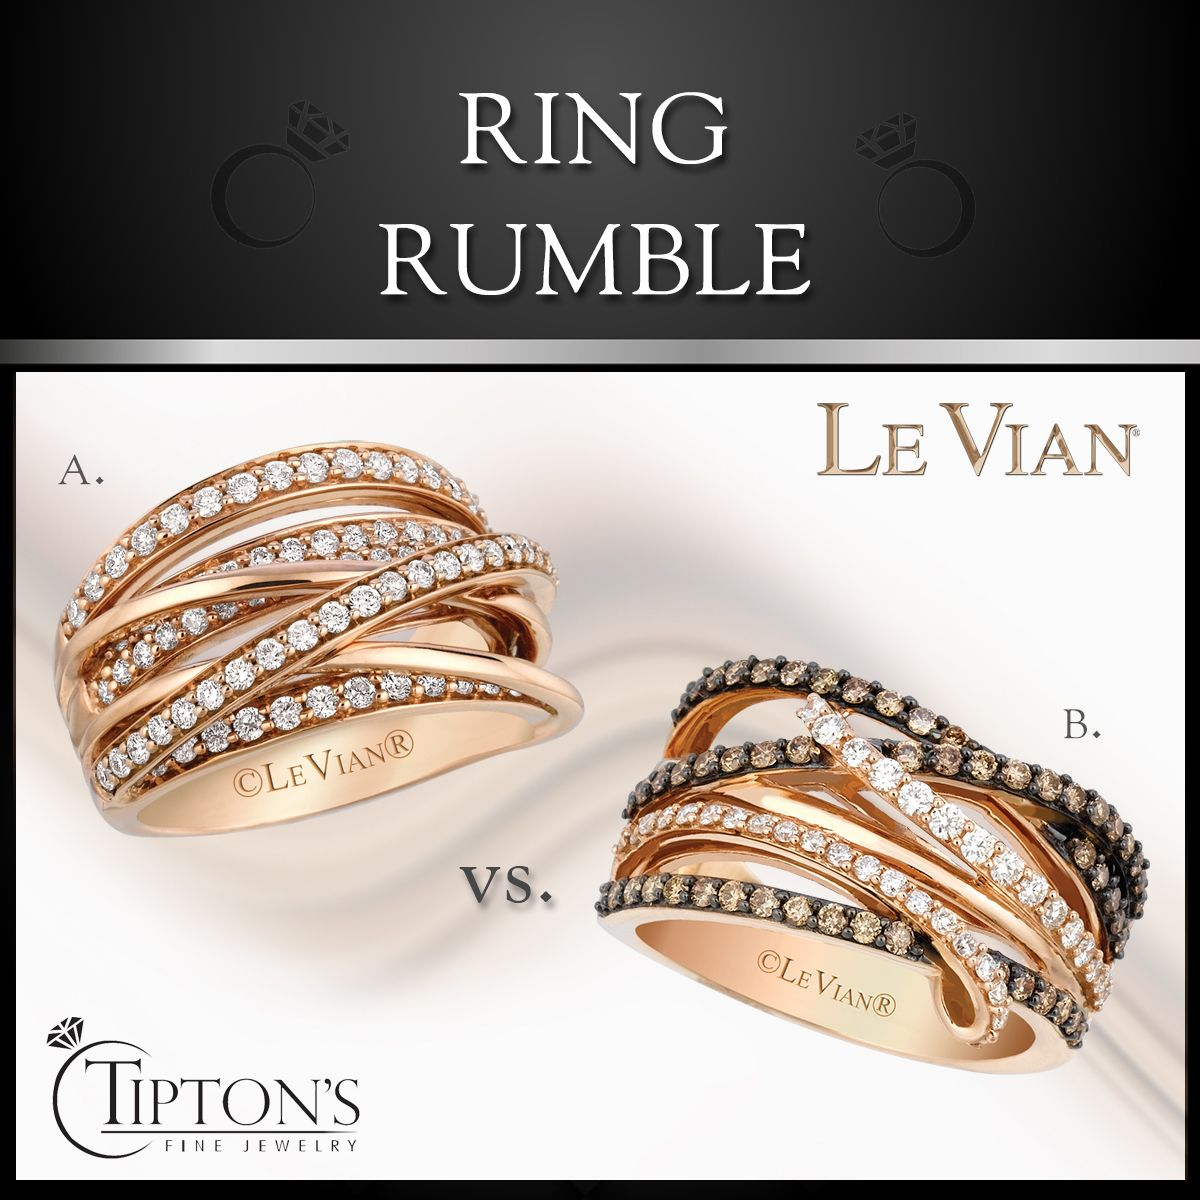 Which ring are you rooting for? LeVian RingRumble